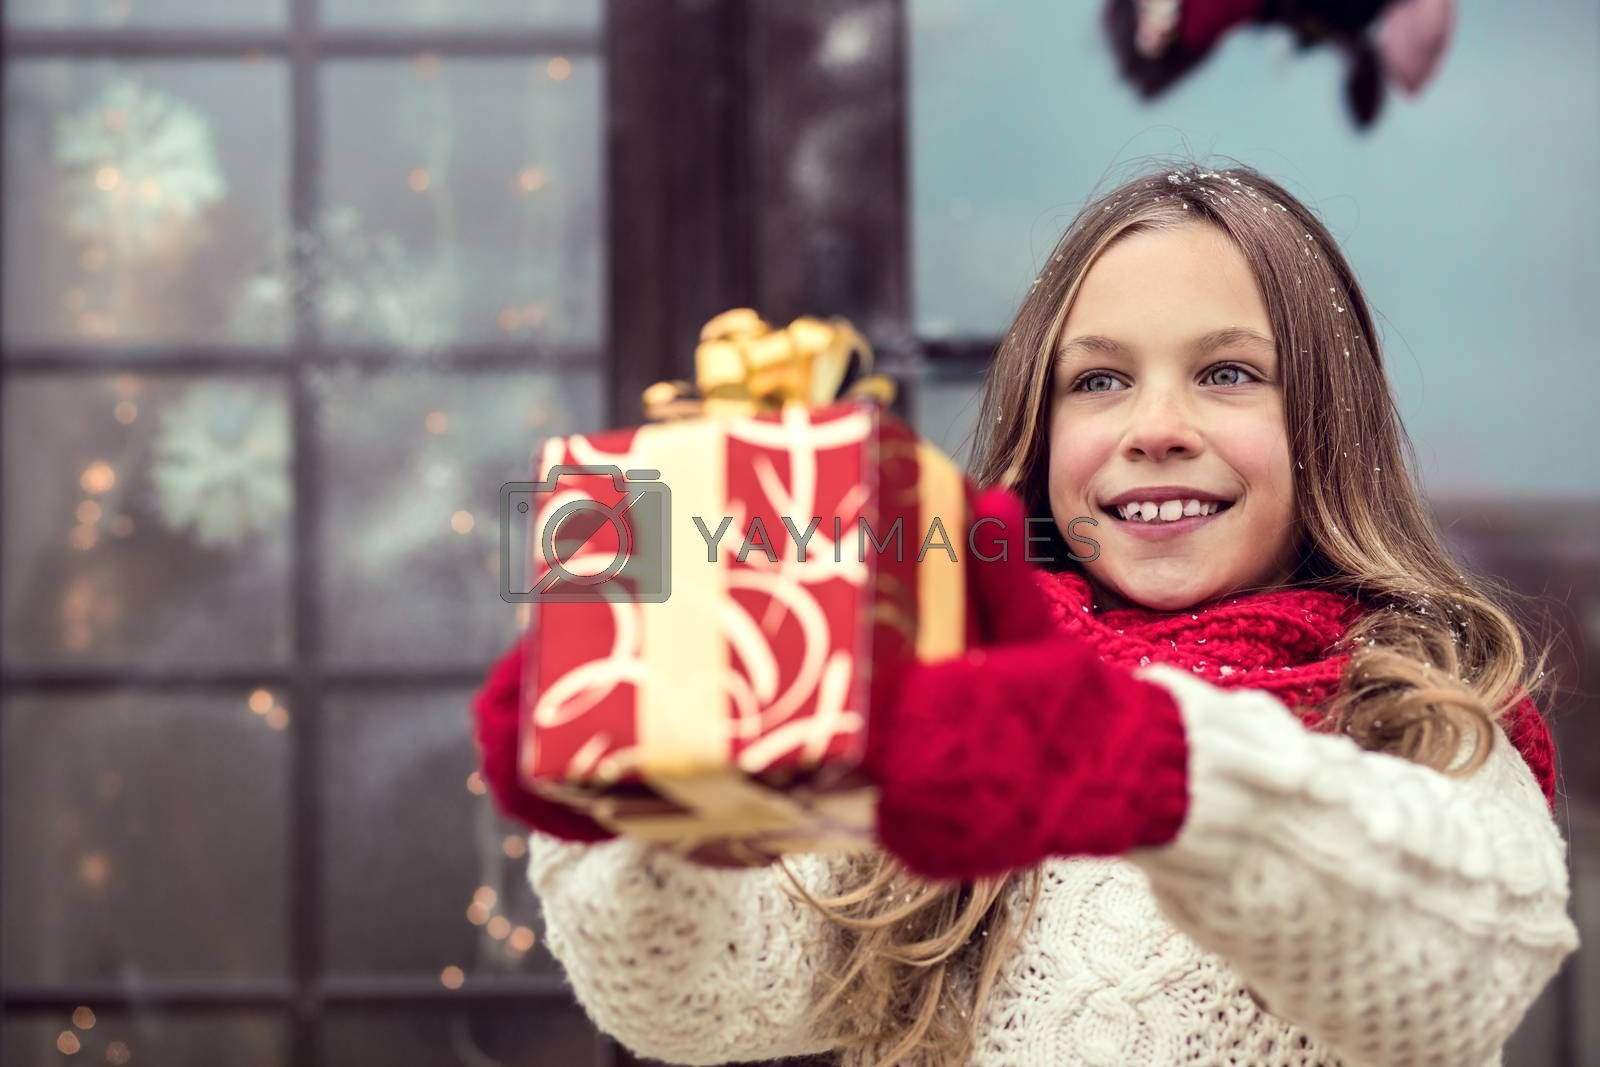 Child giving a Christmas present near her house windows, snowy outside